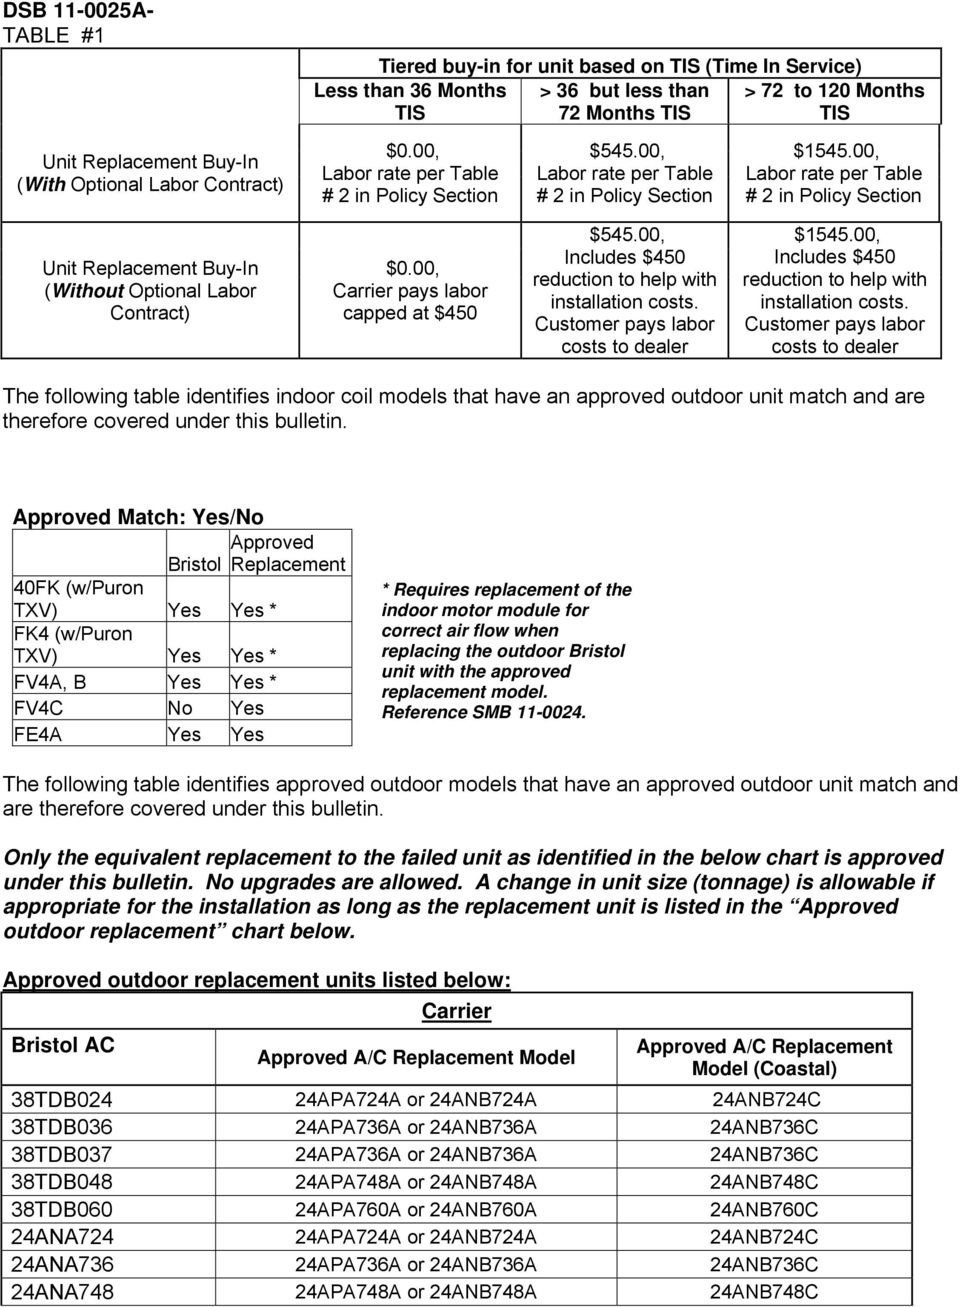 Dealer Service Bulletin Pdf Ac Bristol Wiring Diagram 00 Labor Rate Per Table 2 In Policy Section Unit Replacement Buy